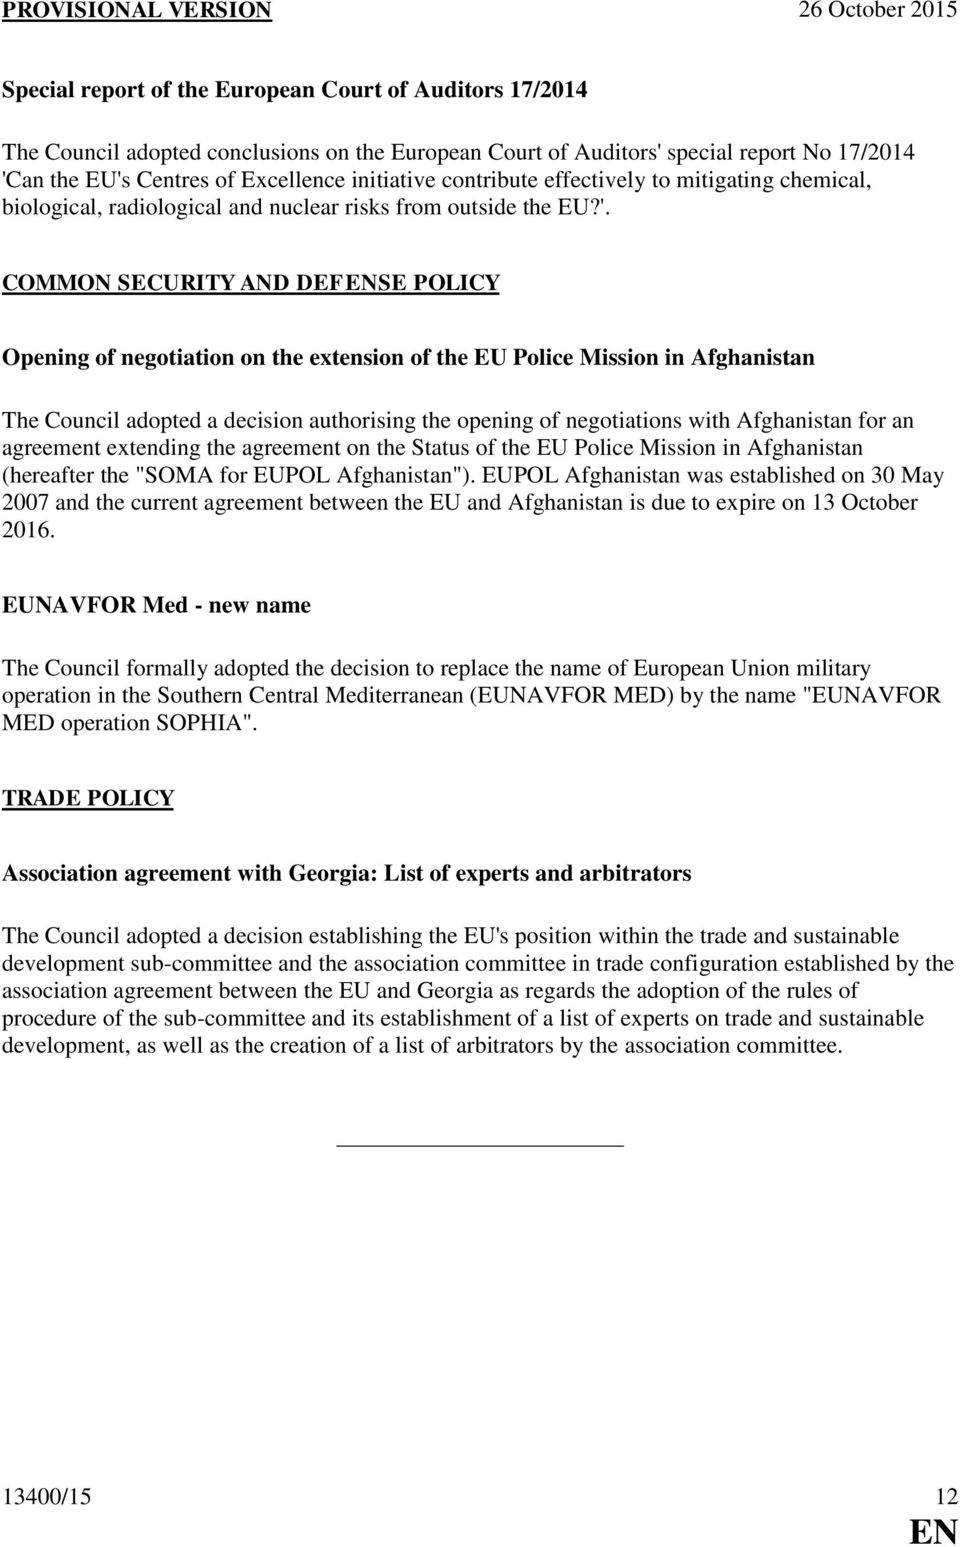 COMMON SECURITY AND DEFSE POLICY Opening of negotiation on the extension of the EU Police Mission in Afghanistan The Council adopted a decision authorising the opening of negotiations with